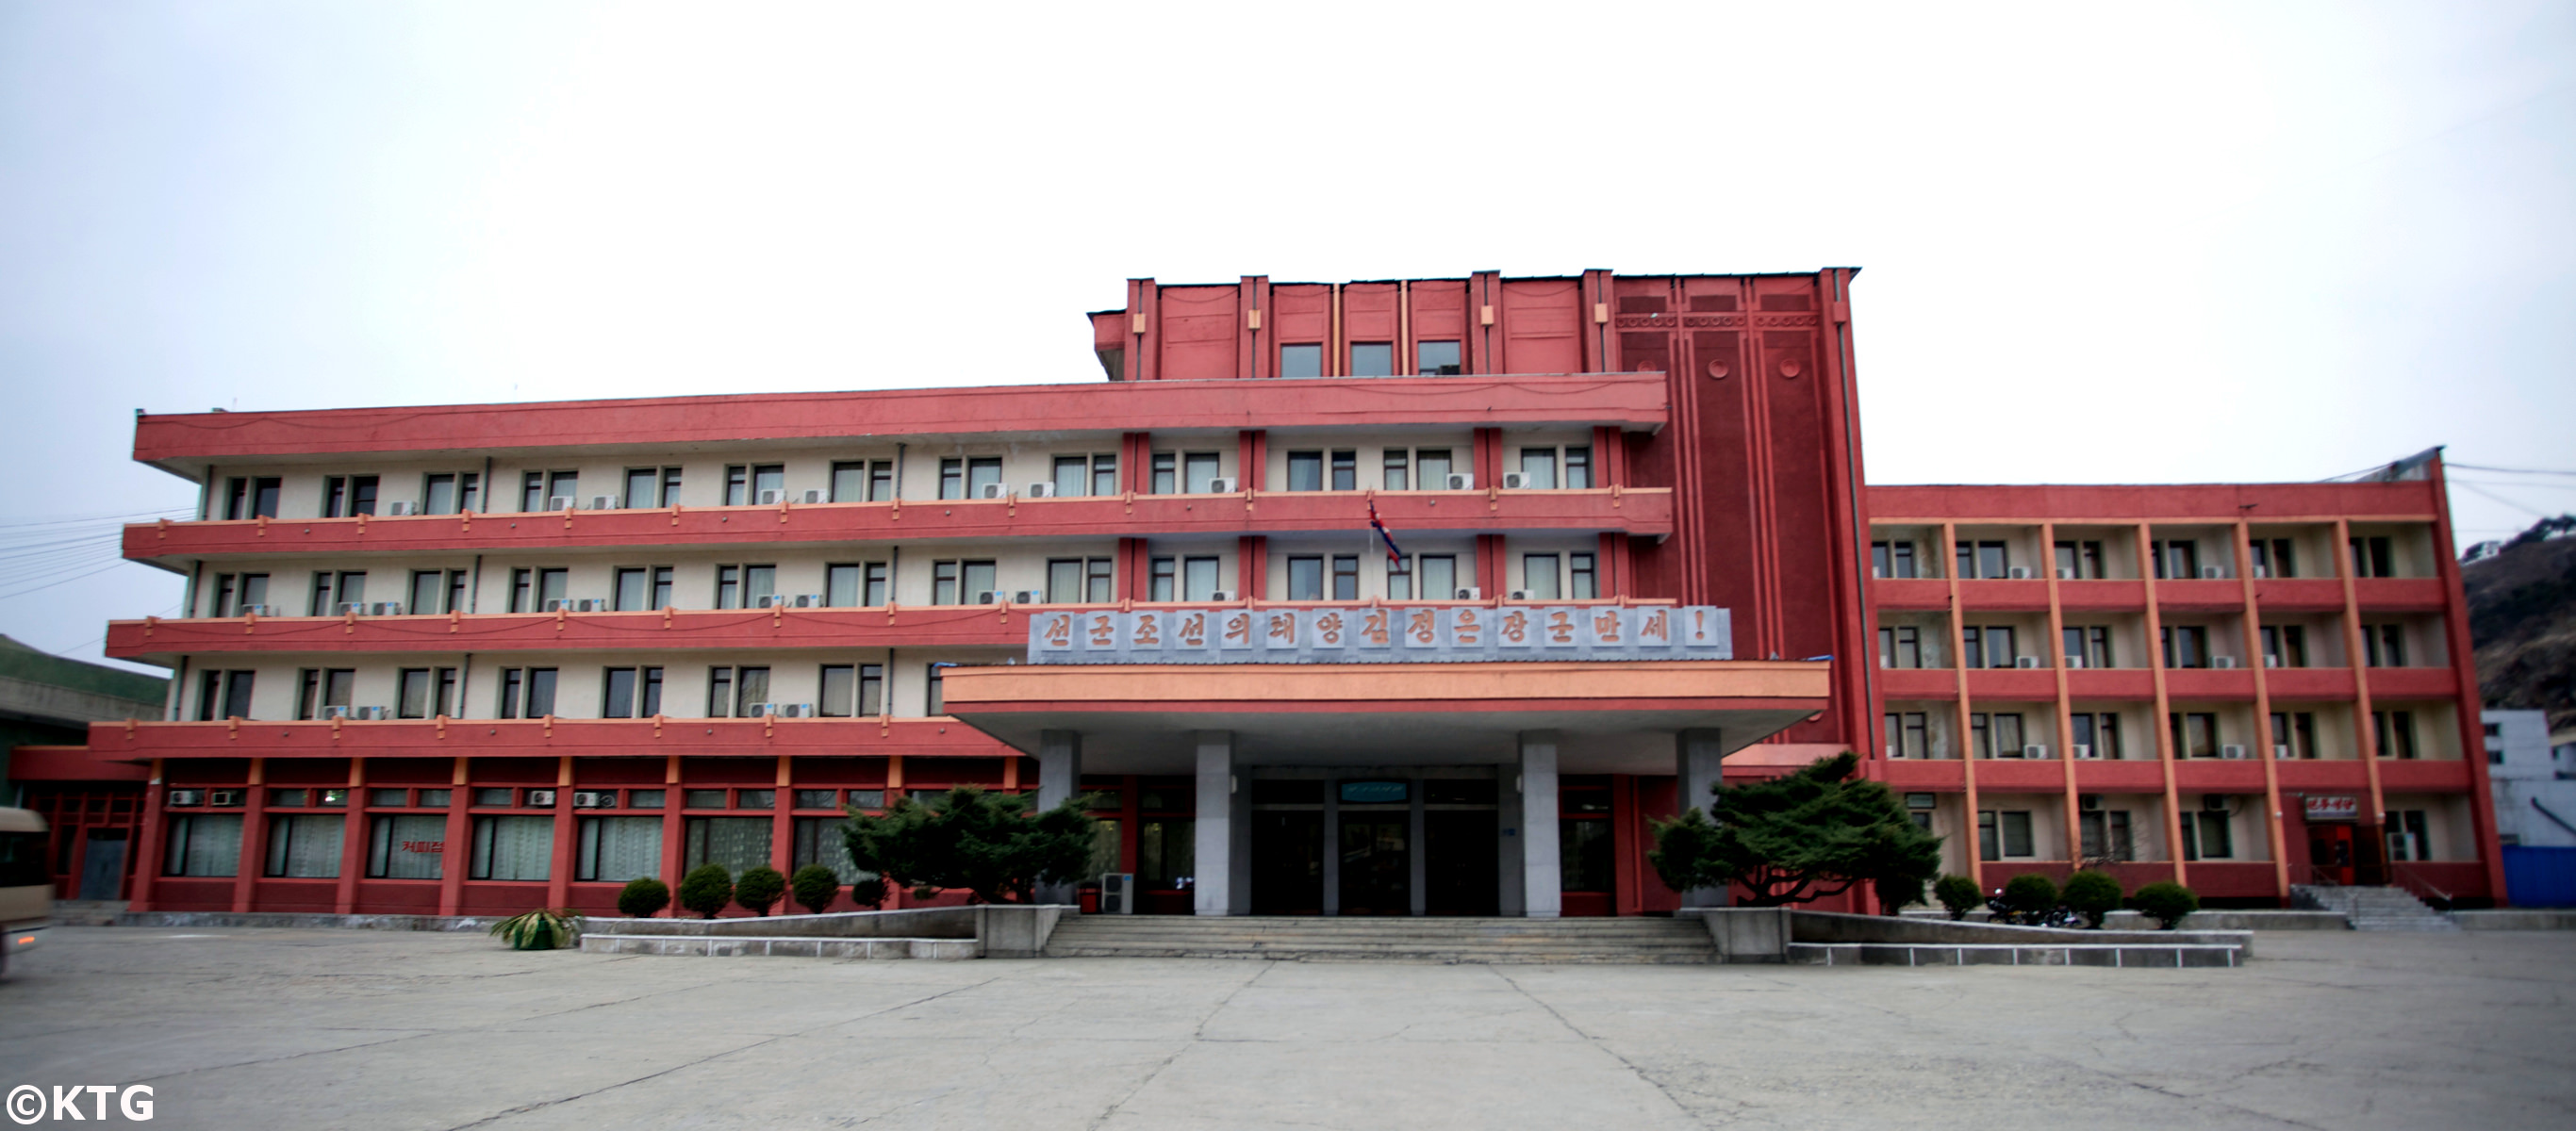 The Jangsusan Hotel in Pyongsong city, North Korea, DPRK. This is the only hotel in the city where foreigners can stay. Picture taken by KTG Tours.